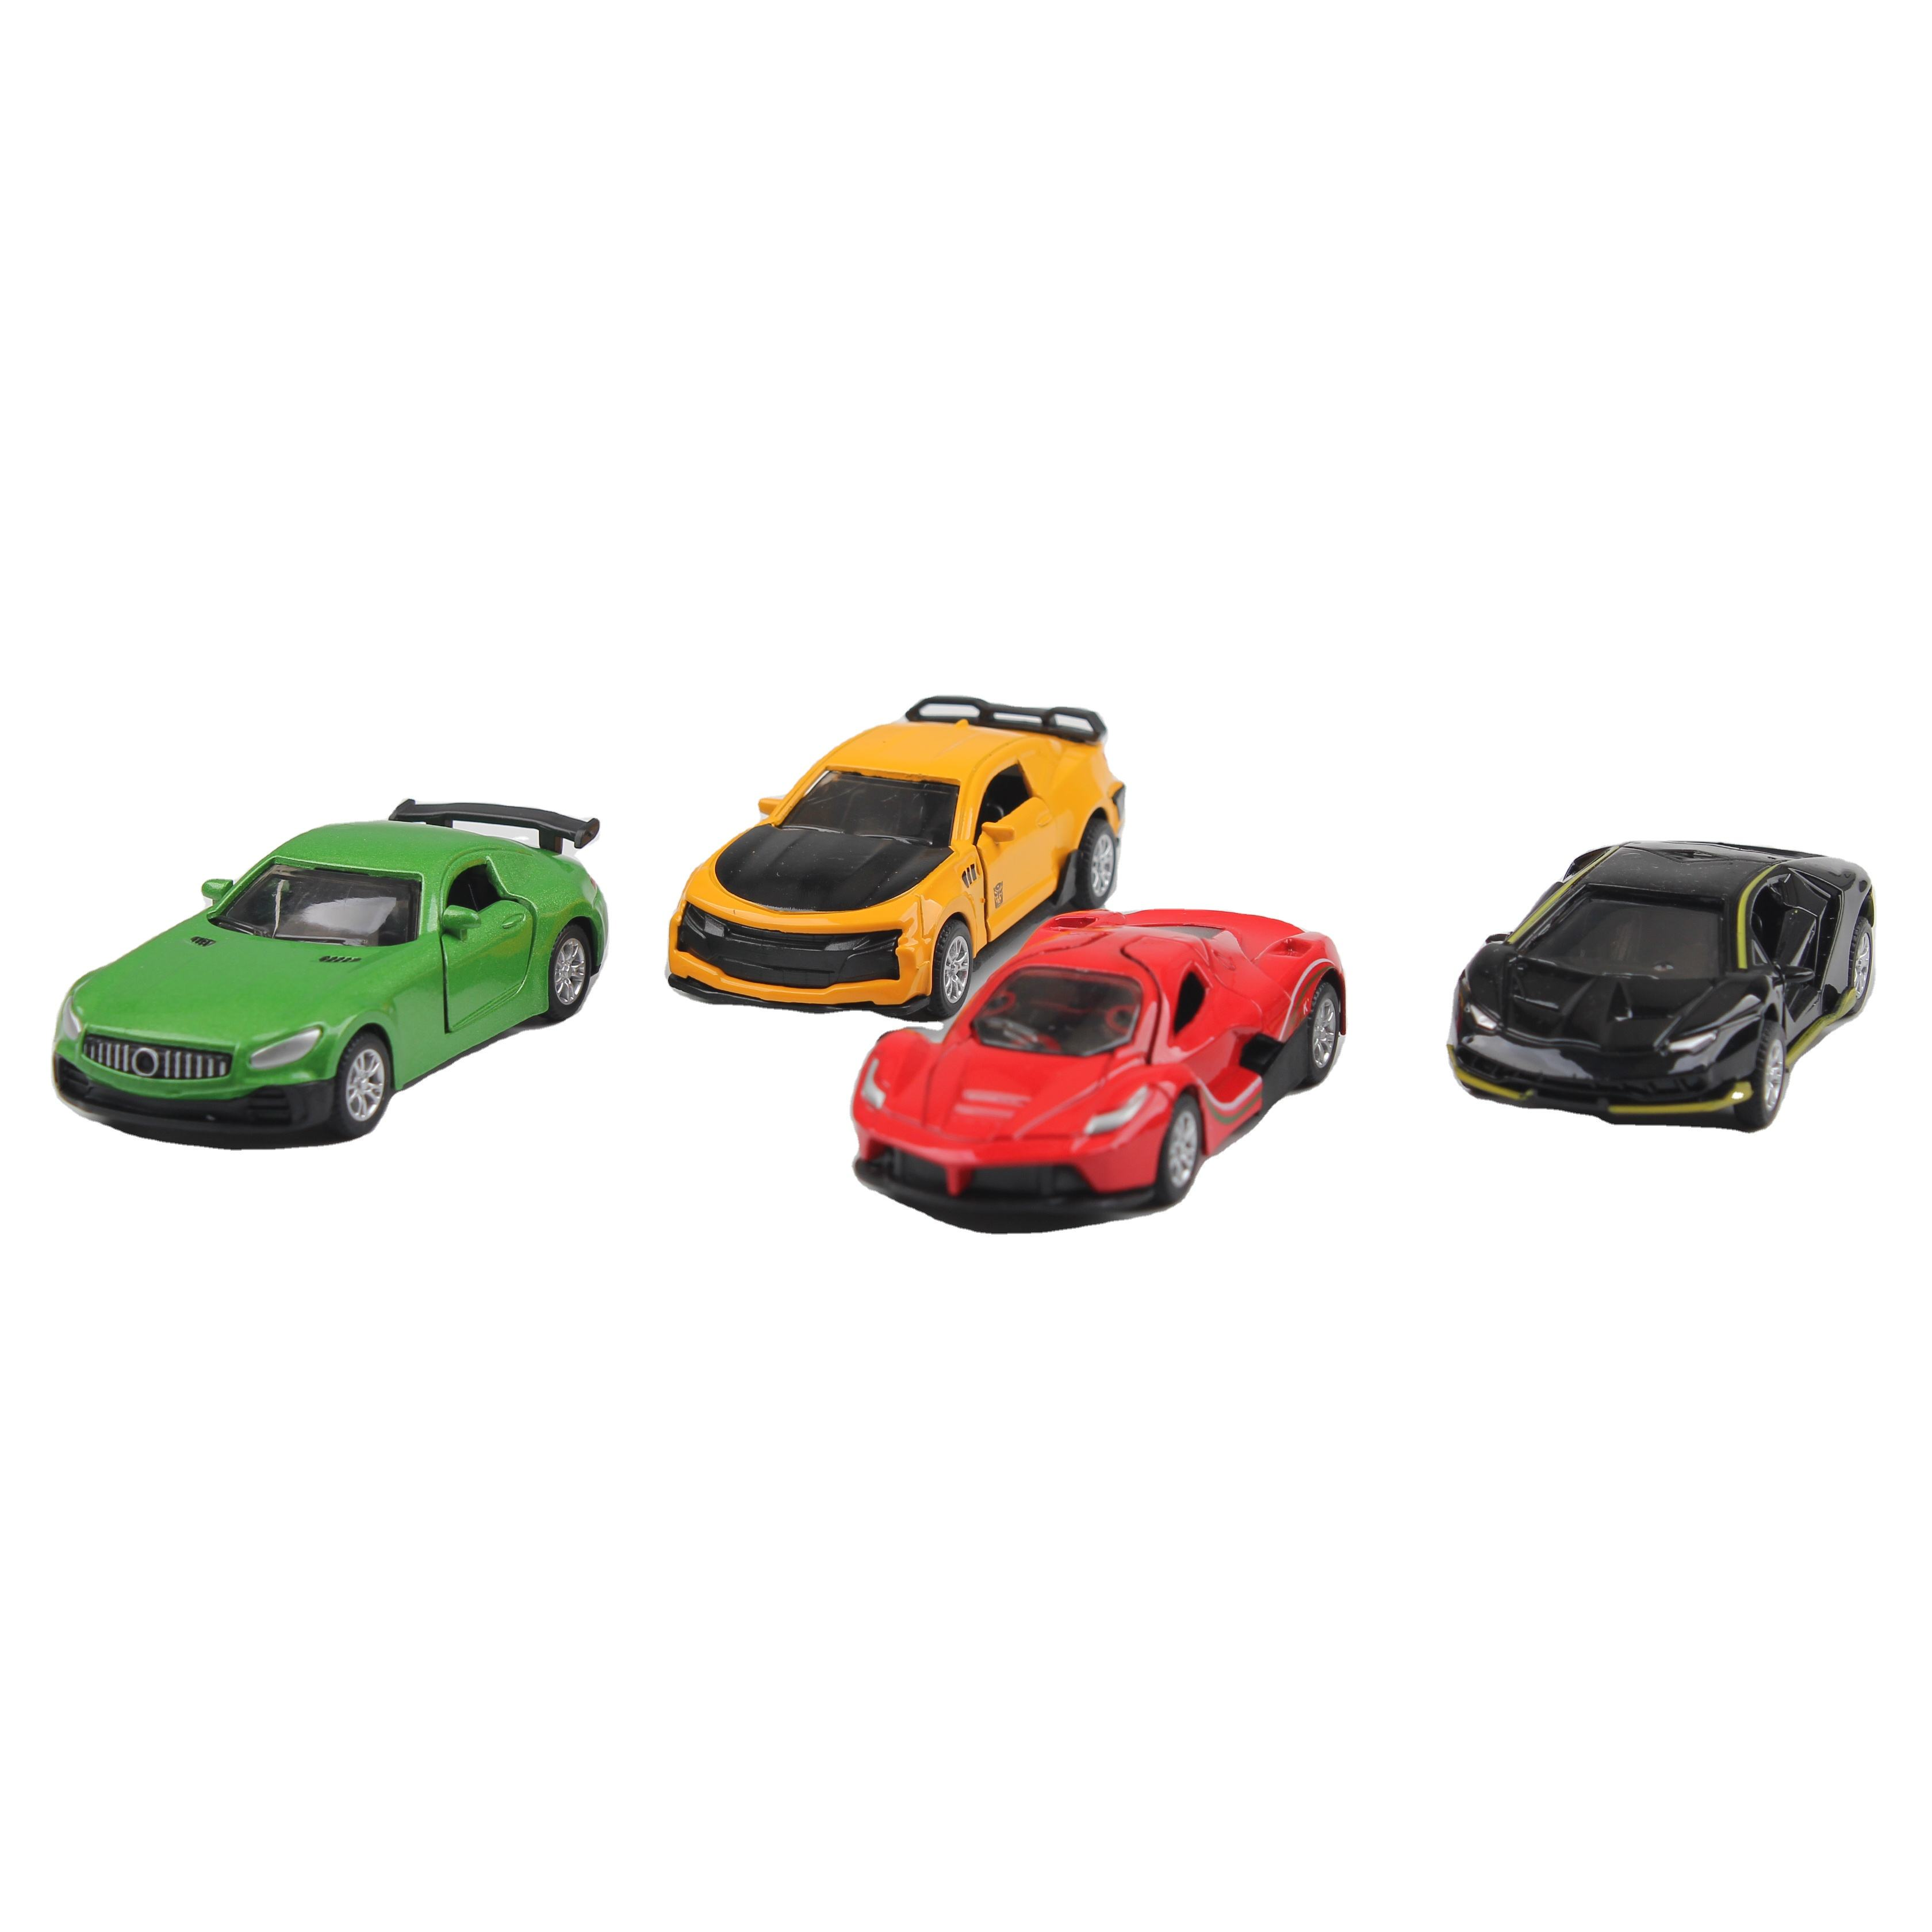 1/64 Hot Selling Sport Super Car Diecast Toys Mini Die Cast Pull Back Vehicle Toys